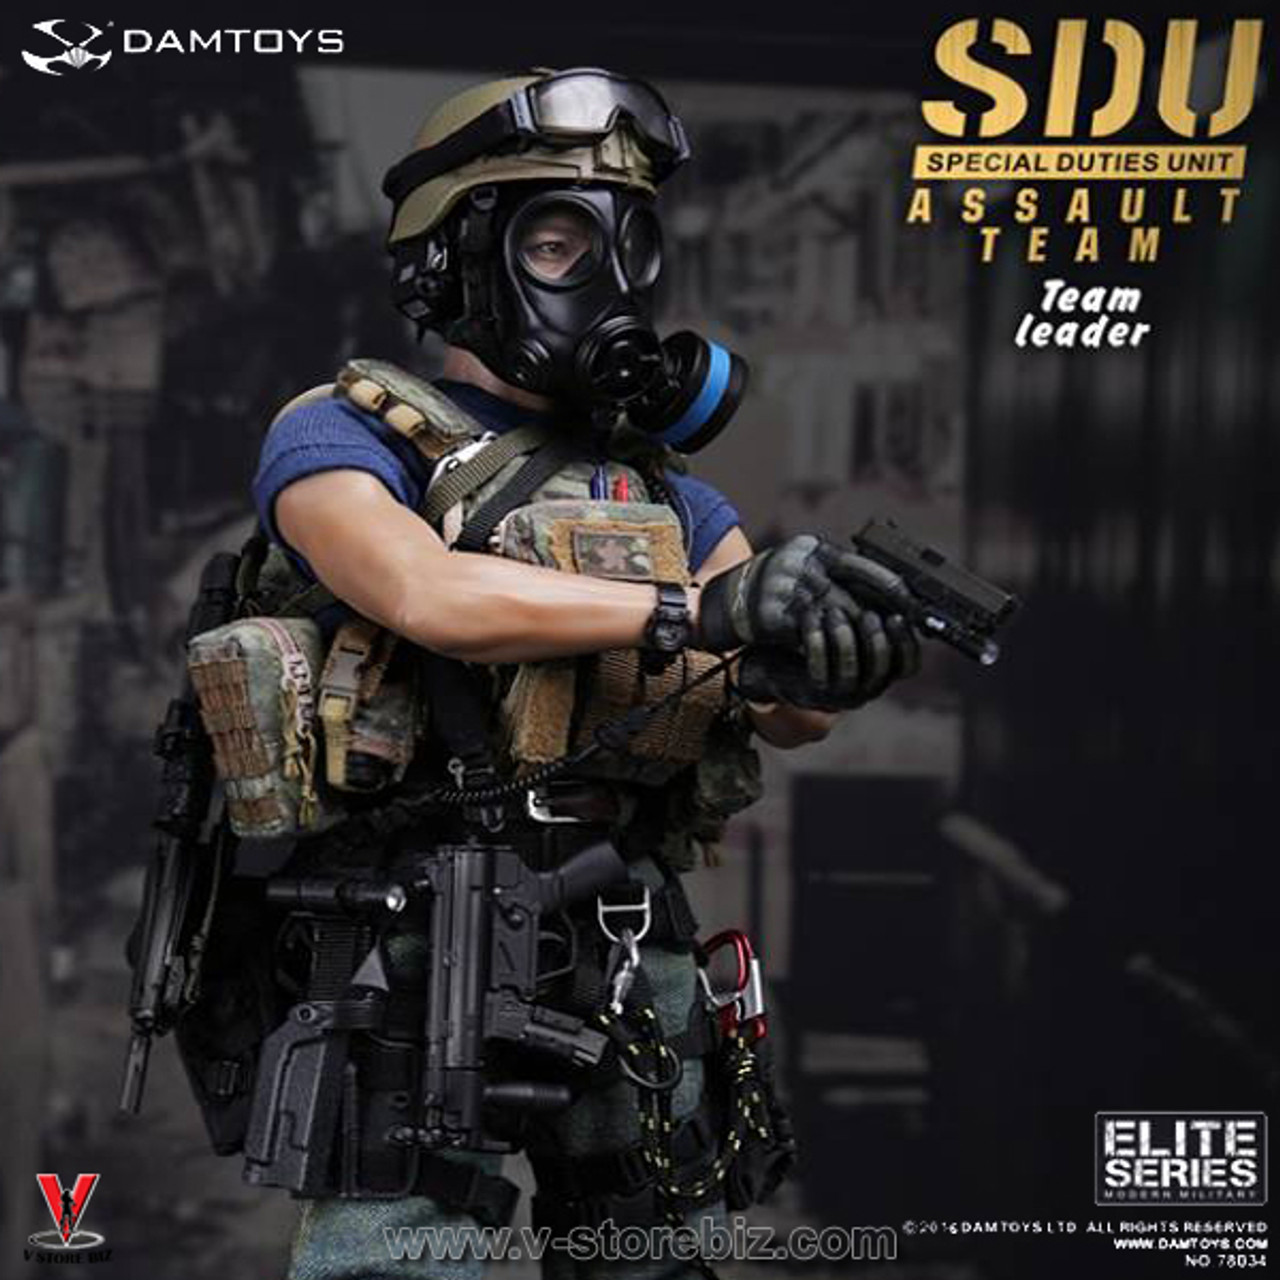 SOLDIER STORY Radio /& Headset SDU ASSAULT LEADER 1//6 ACTION FIGURE TOYS did dam